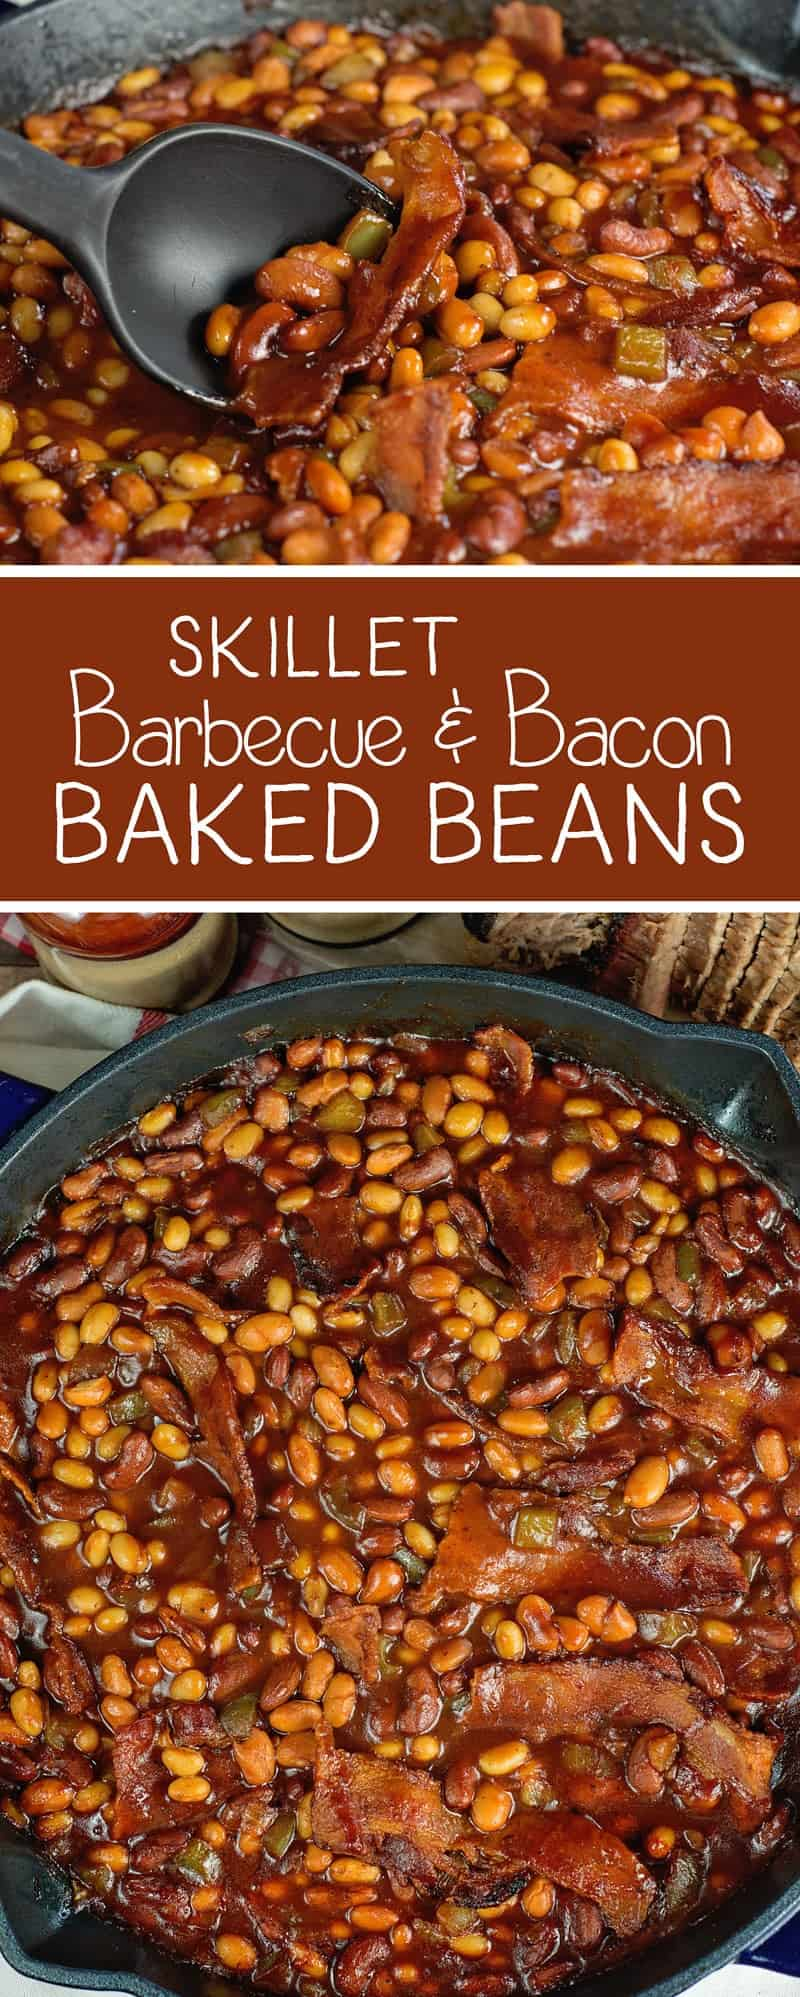 The best Skillet Barbecue Baked Beans with Bacon Recipe EVER! - Bonus: you can make them on them in the oven or over the campfire.